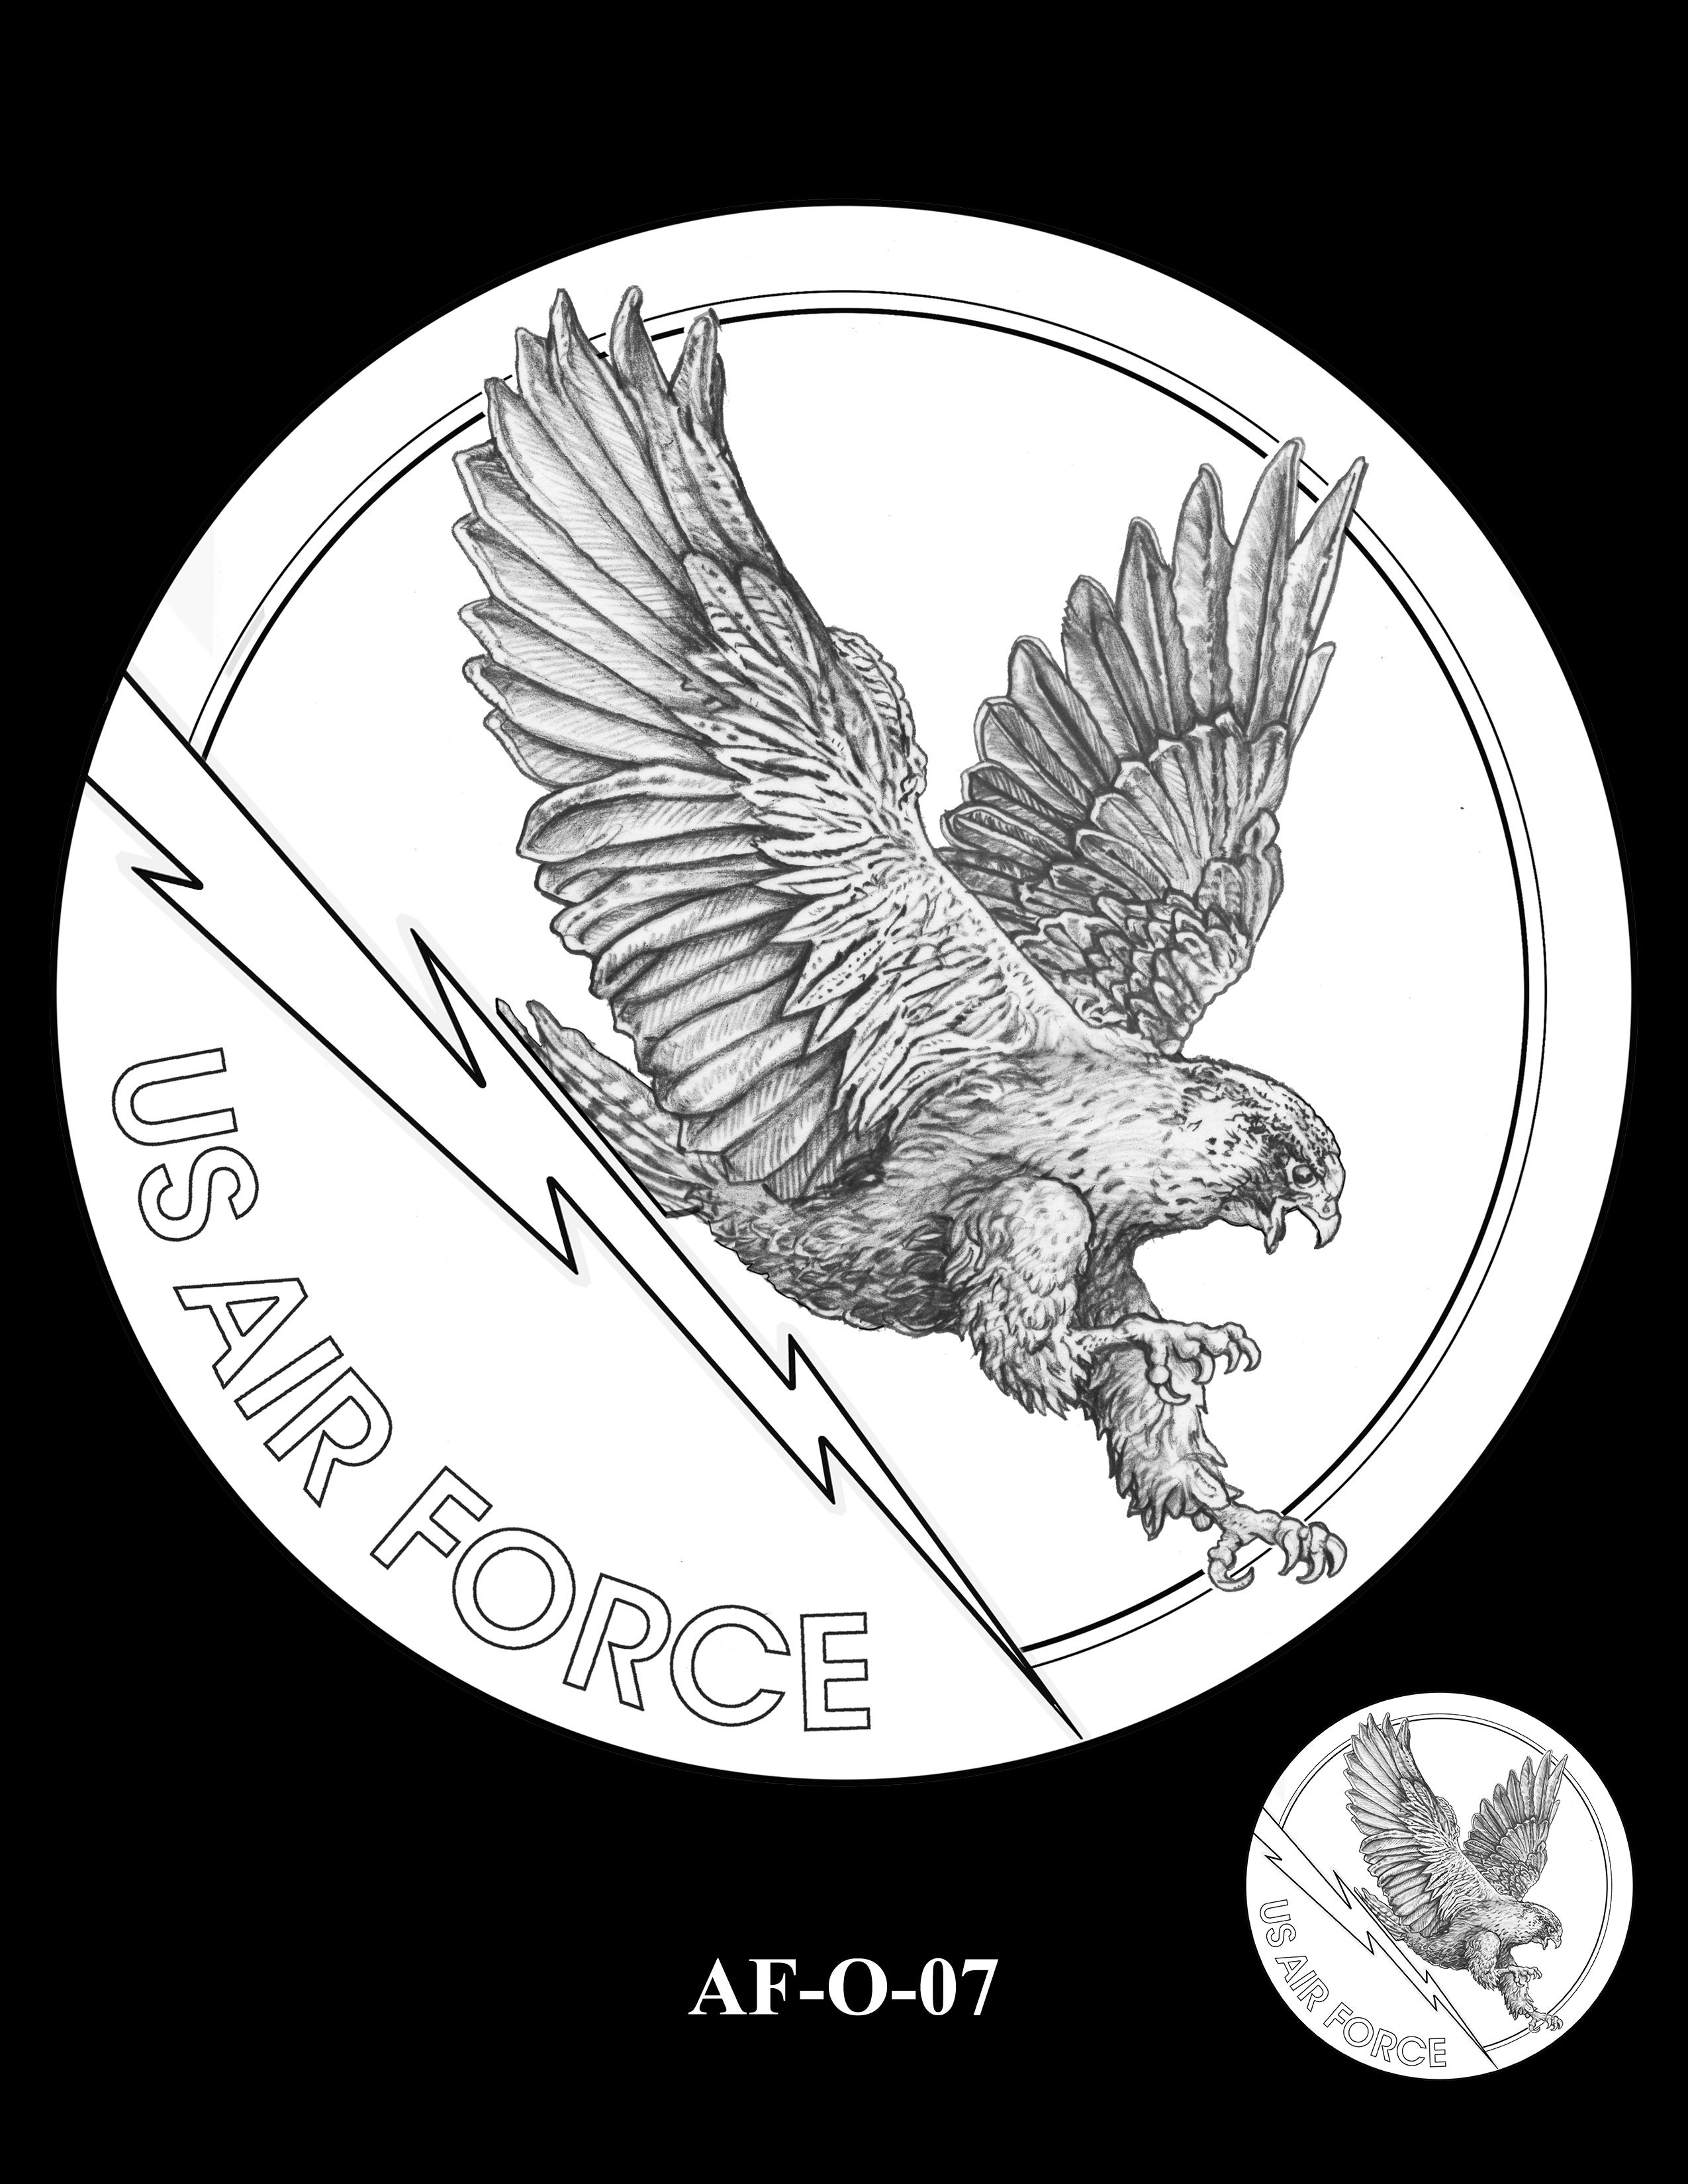 AF-O-07 -- Armed Forces Medal - Air Force